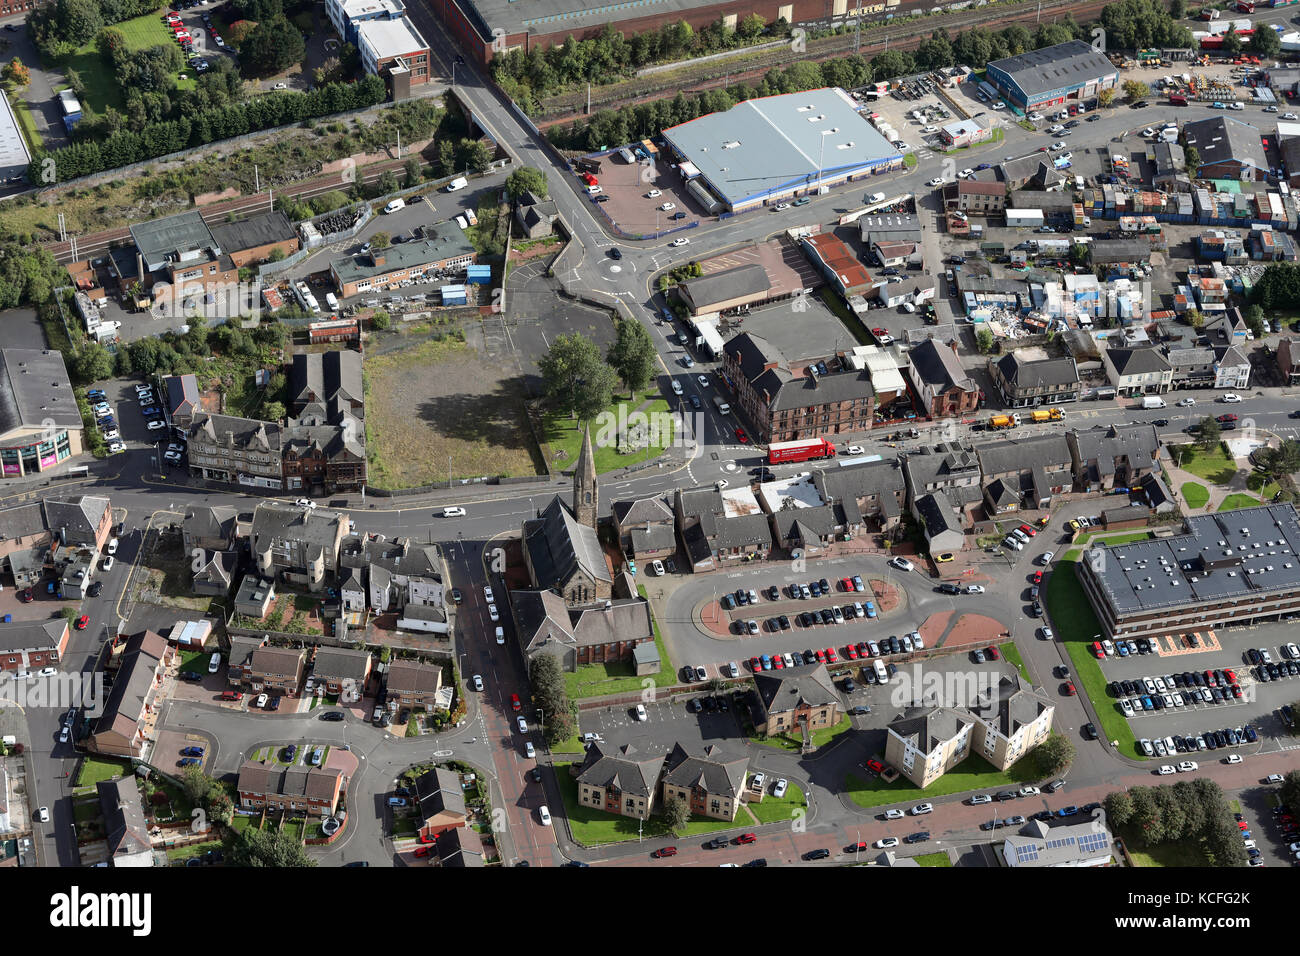 aerial view of the A721 main street in Motherwell, Scotland, UK Stock Photo